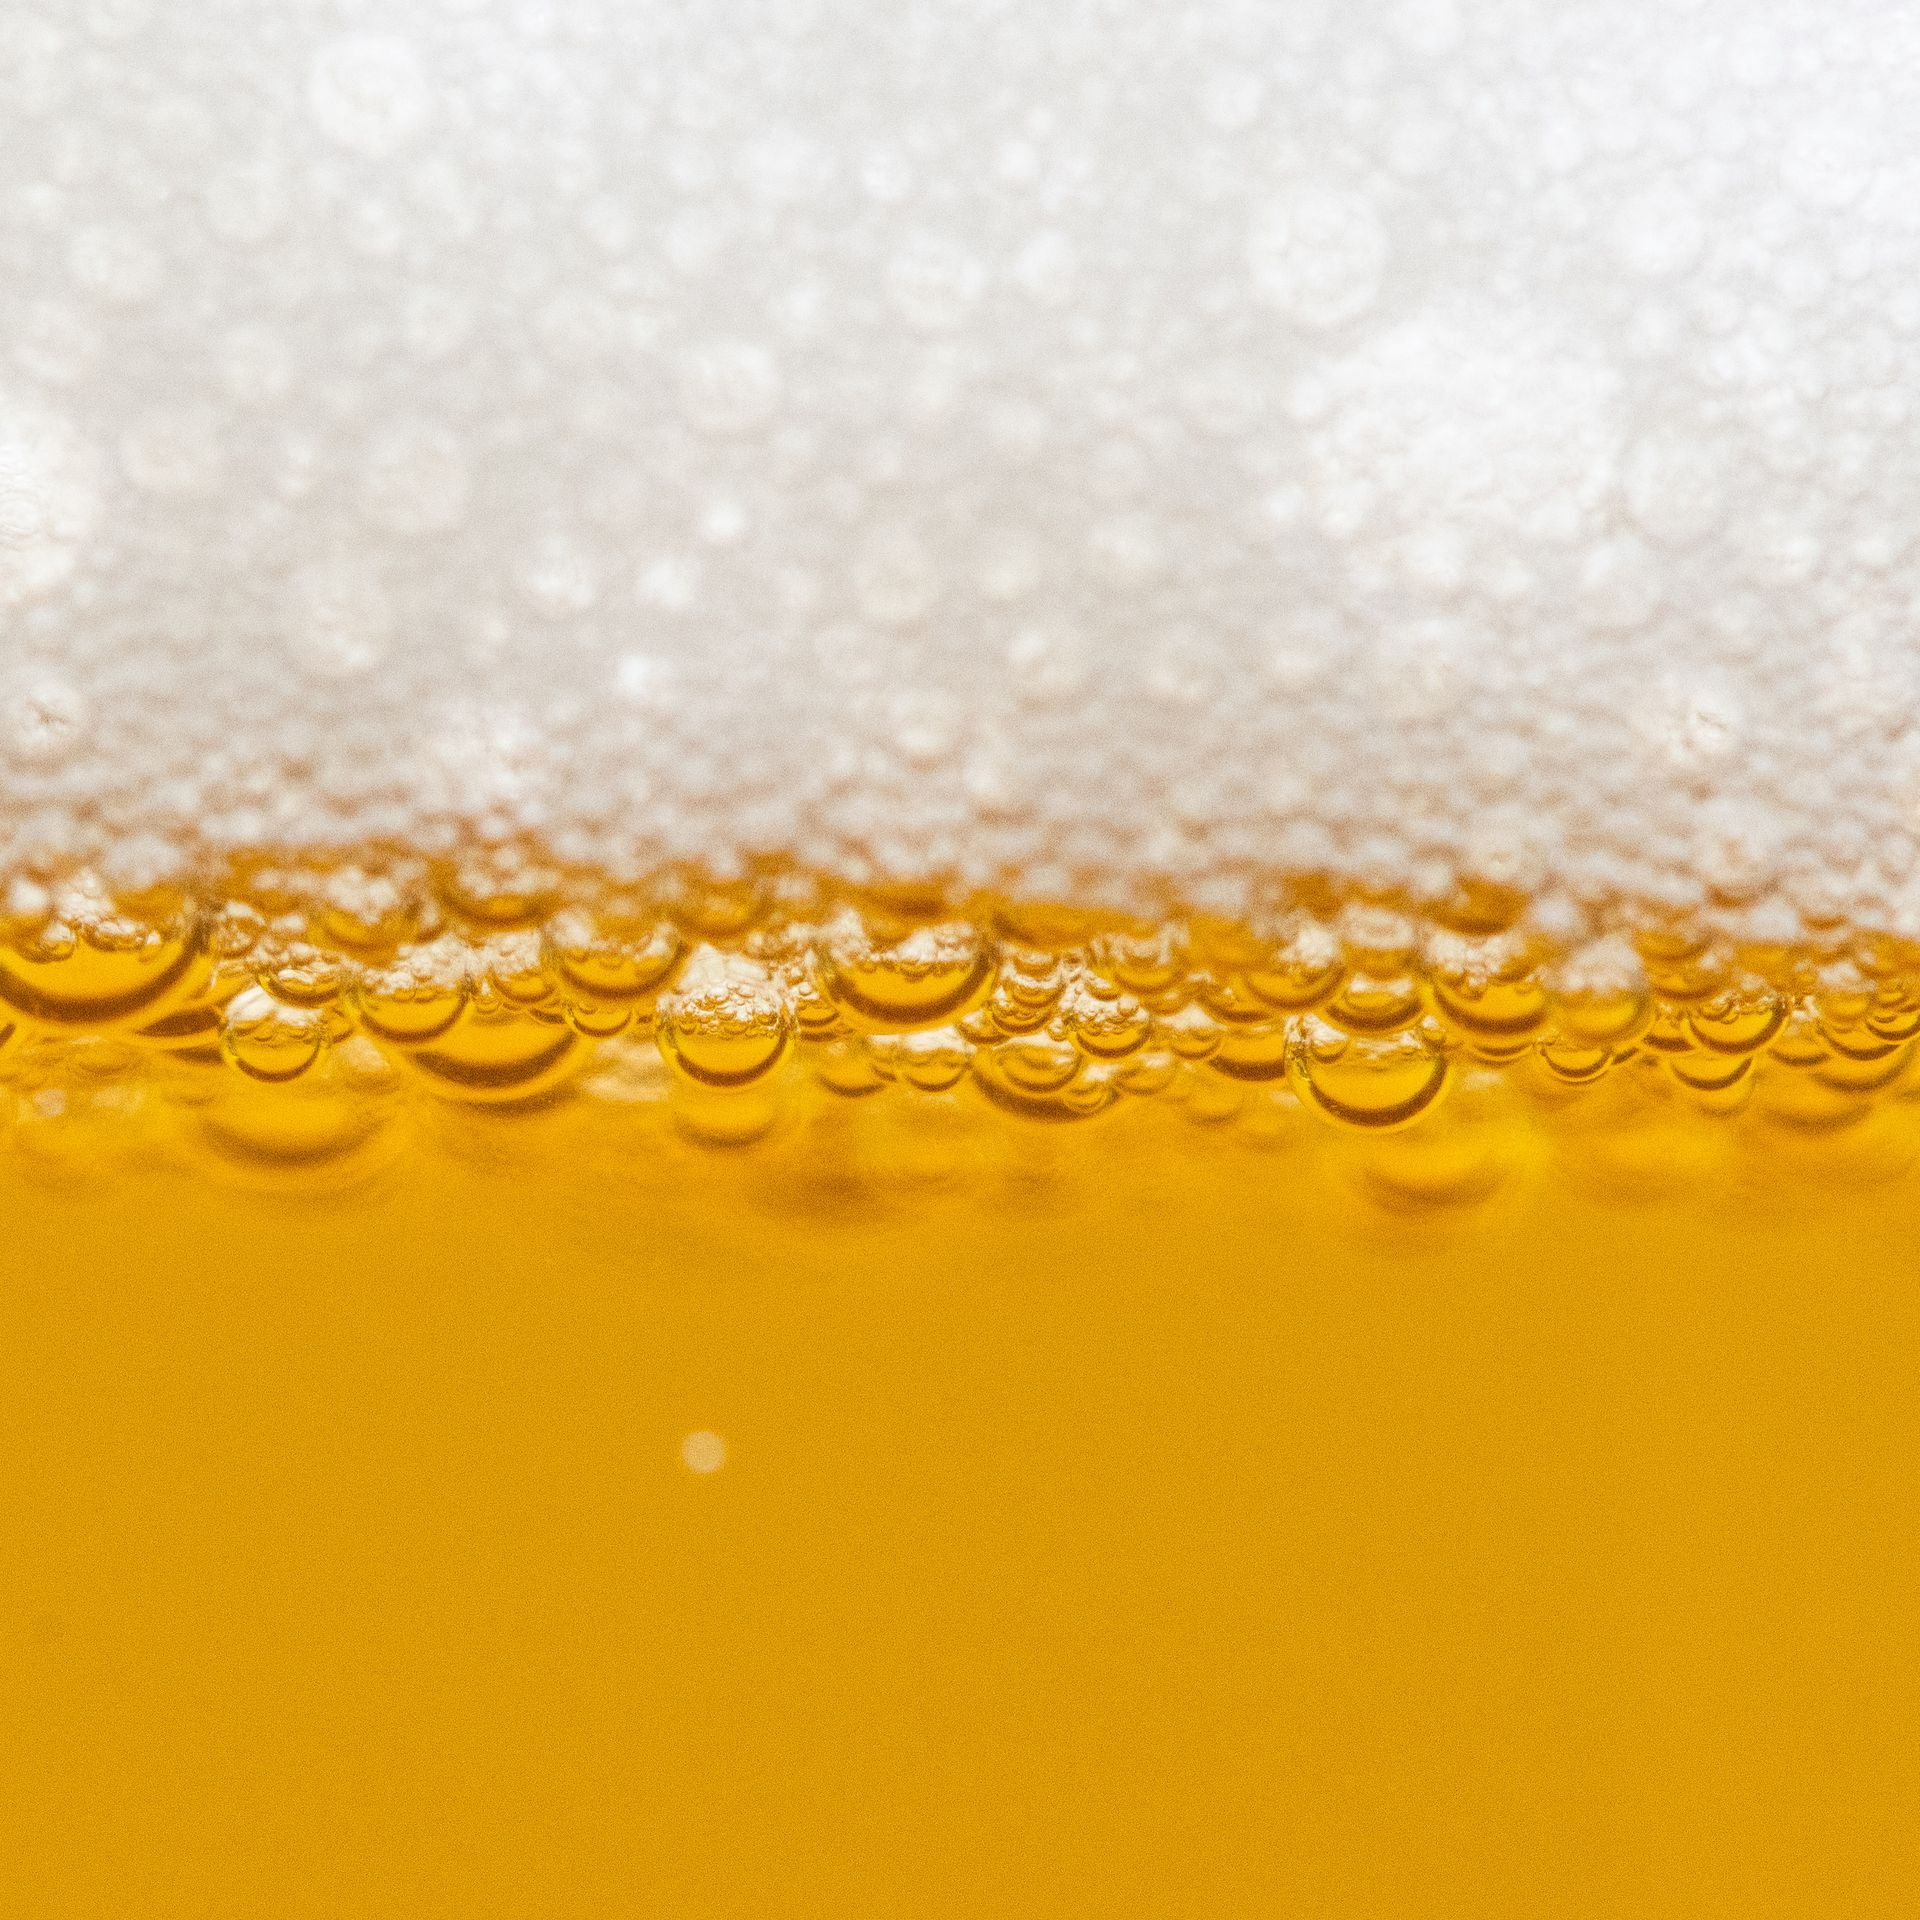 A close up of beer and foam